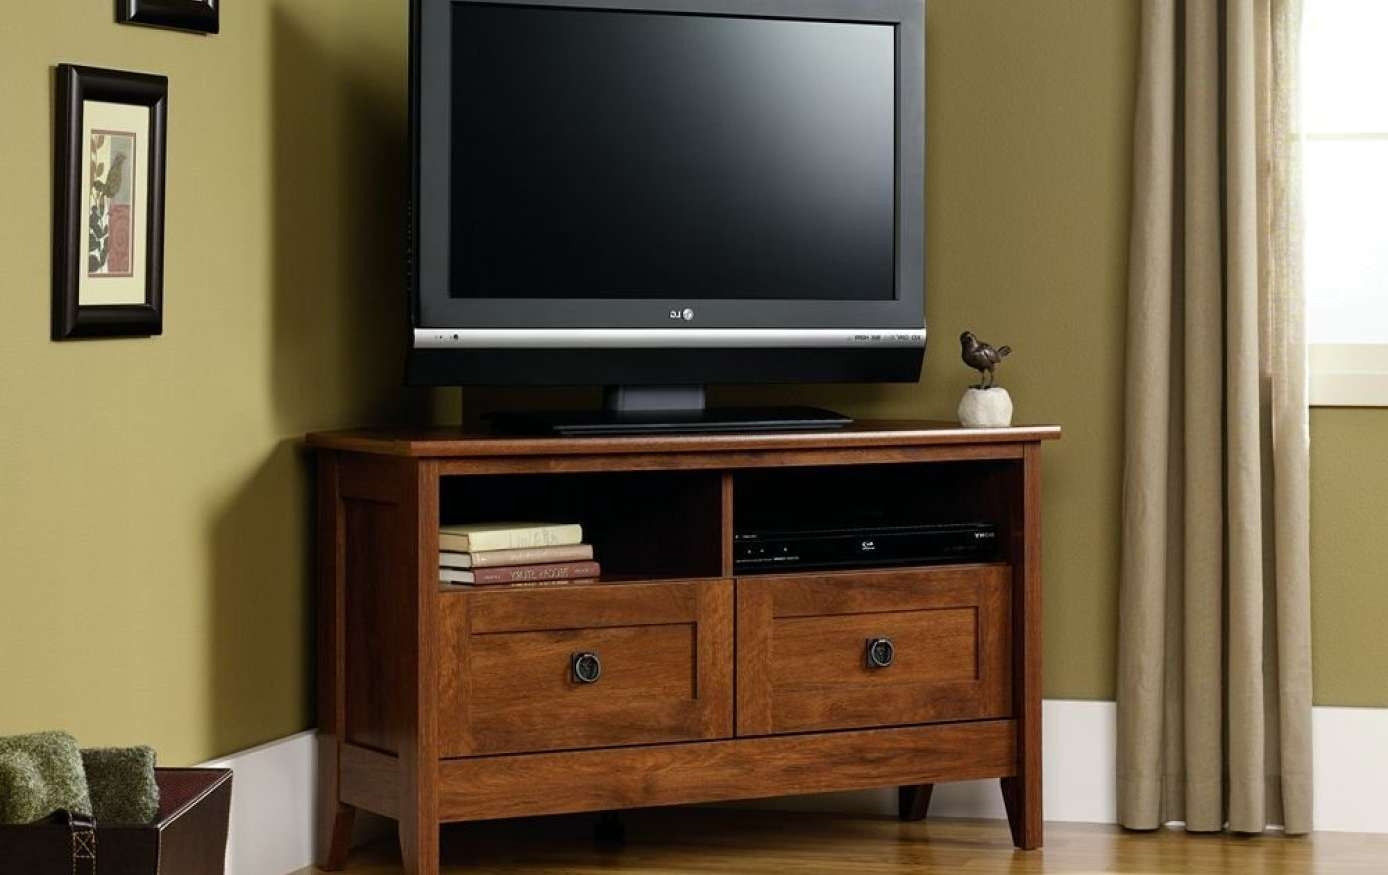 Tv : Beautiful Light Oak Tv Stands Flat Screen Mainstays Tv Stand Throughout Light Oak Tv Stands Flat Screen (View 12 of 15)